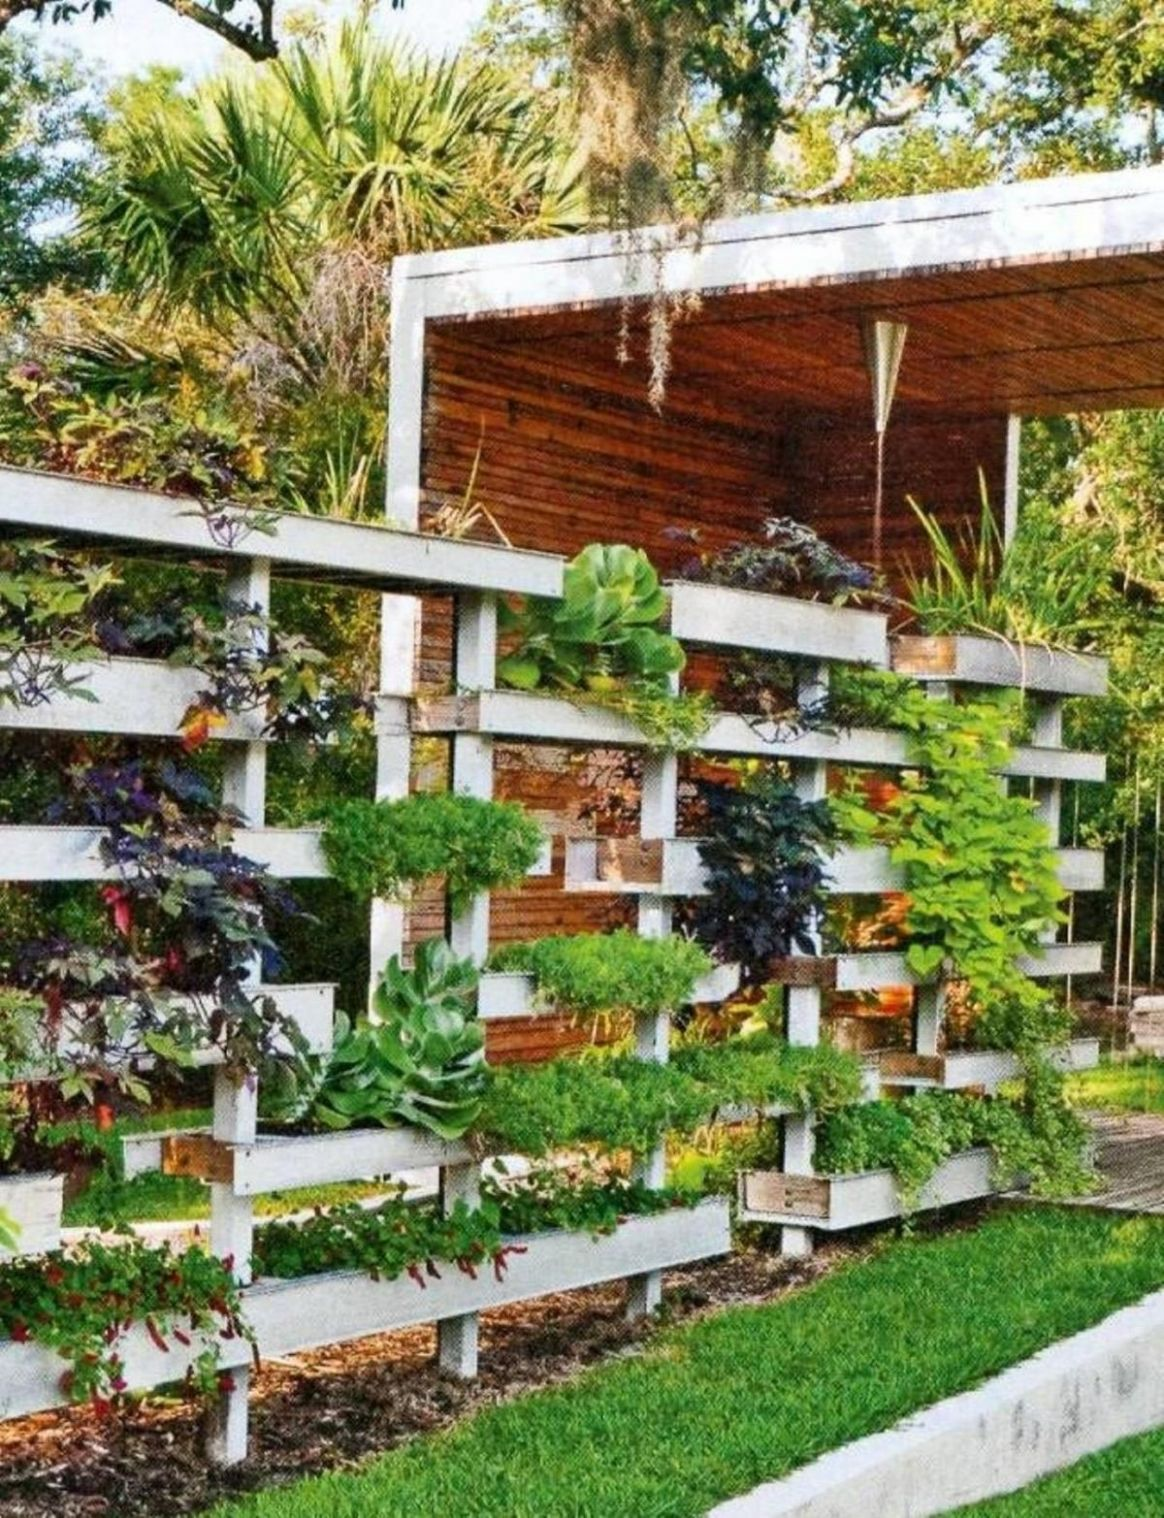 House Garden Ideas Decoration Room Interior And Simple For Front ..